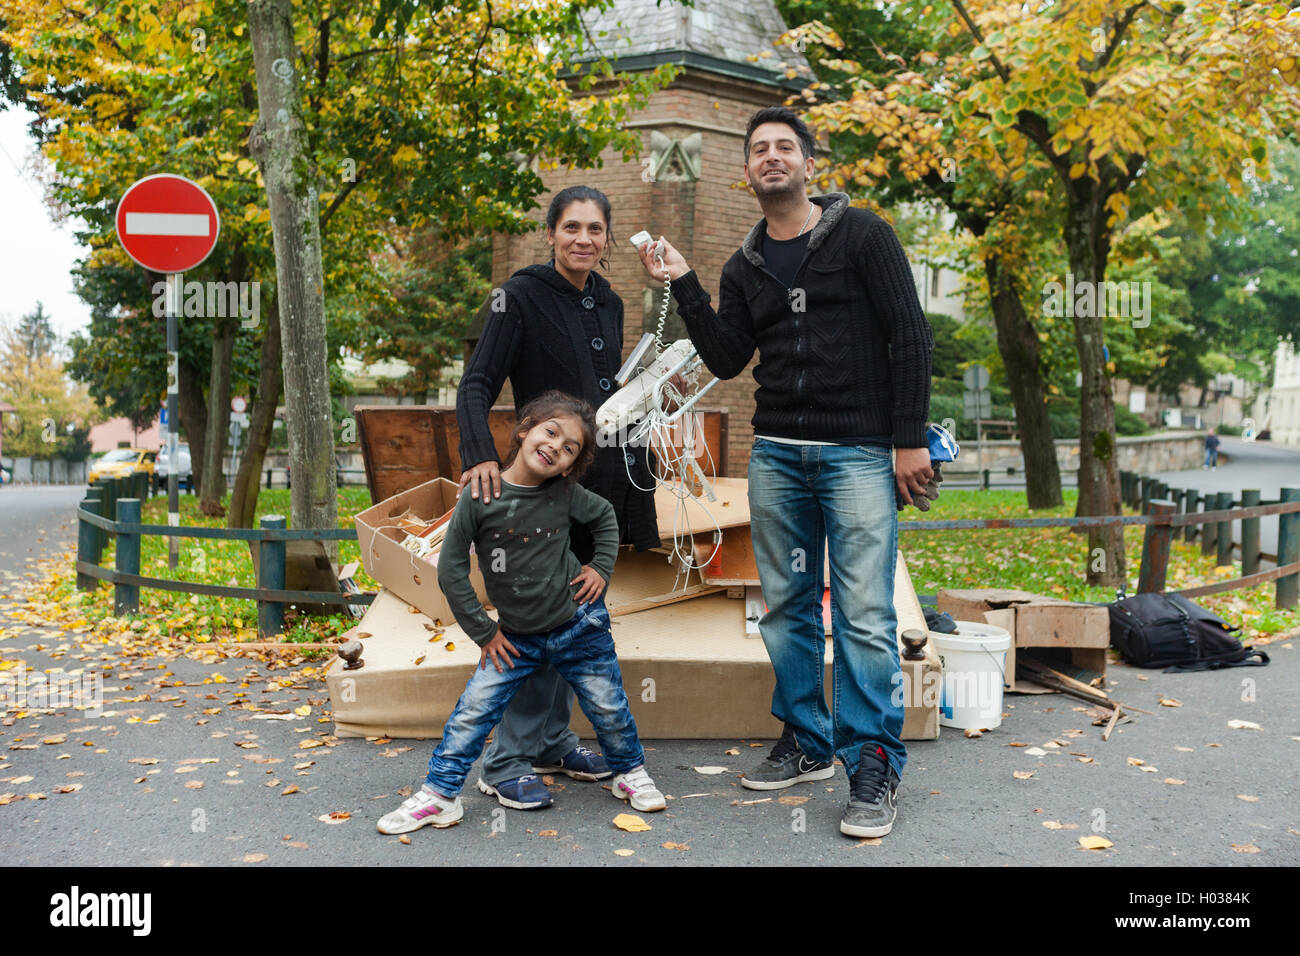 ZAGREB, CROATIA - OCTOBER 14, 2013: Roma family fooling around for camera at garbage dump. - Stock Image